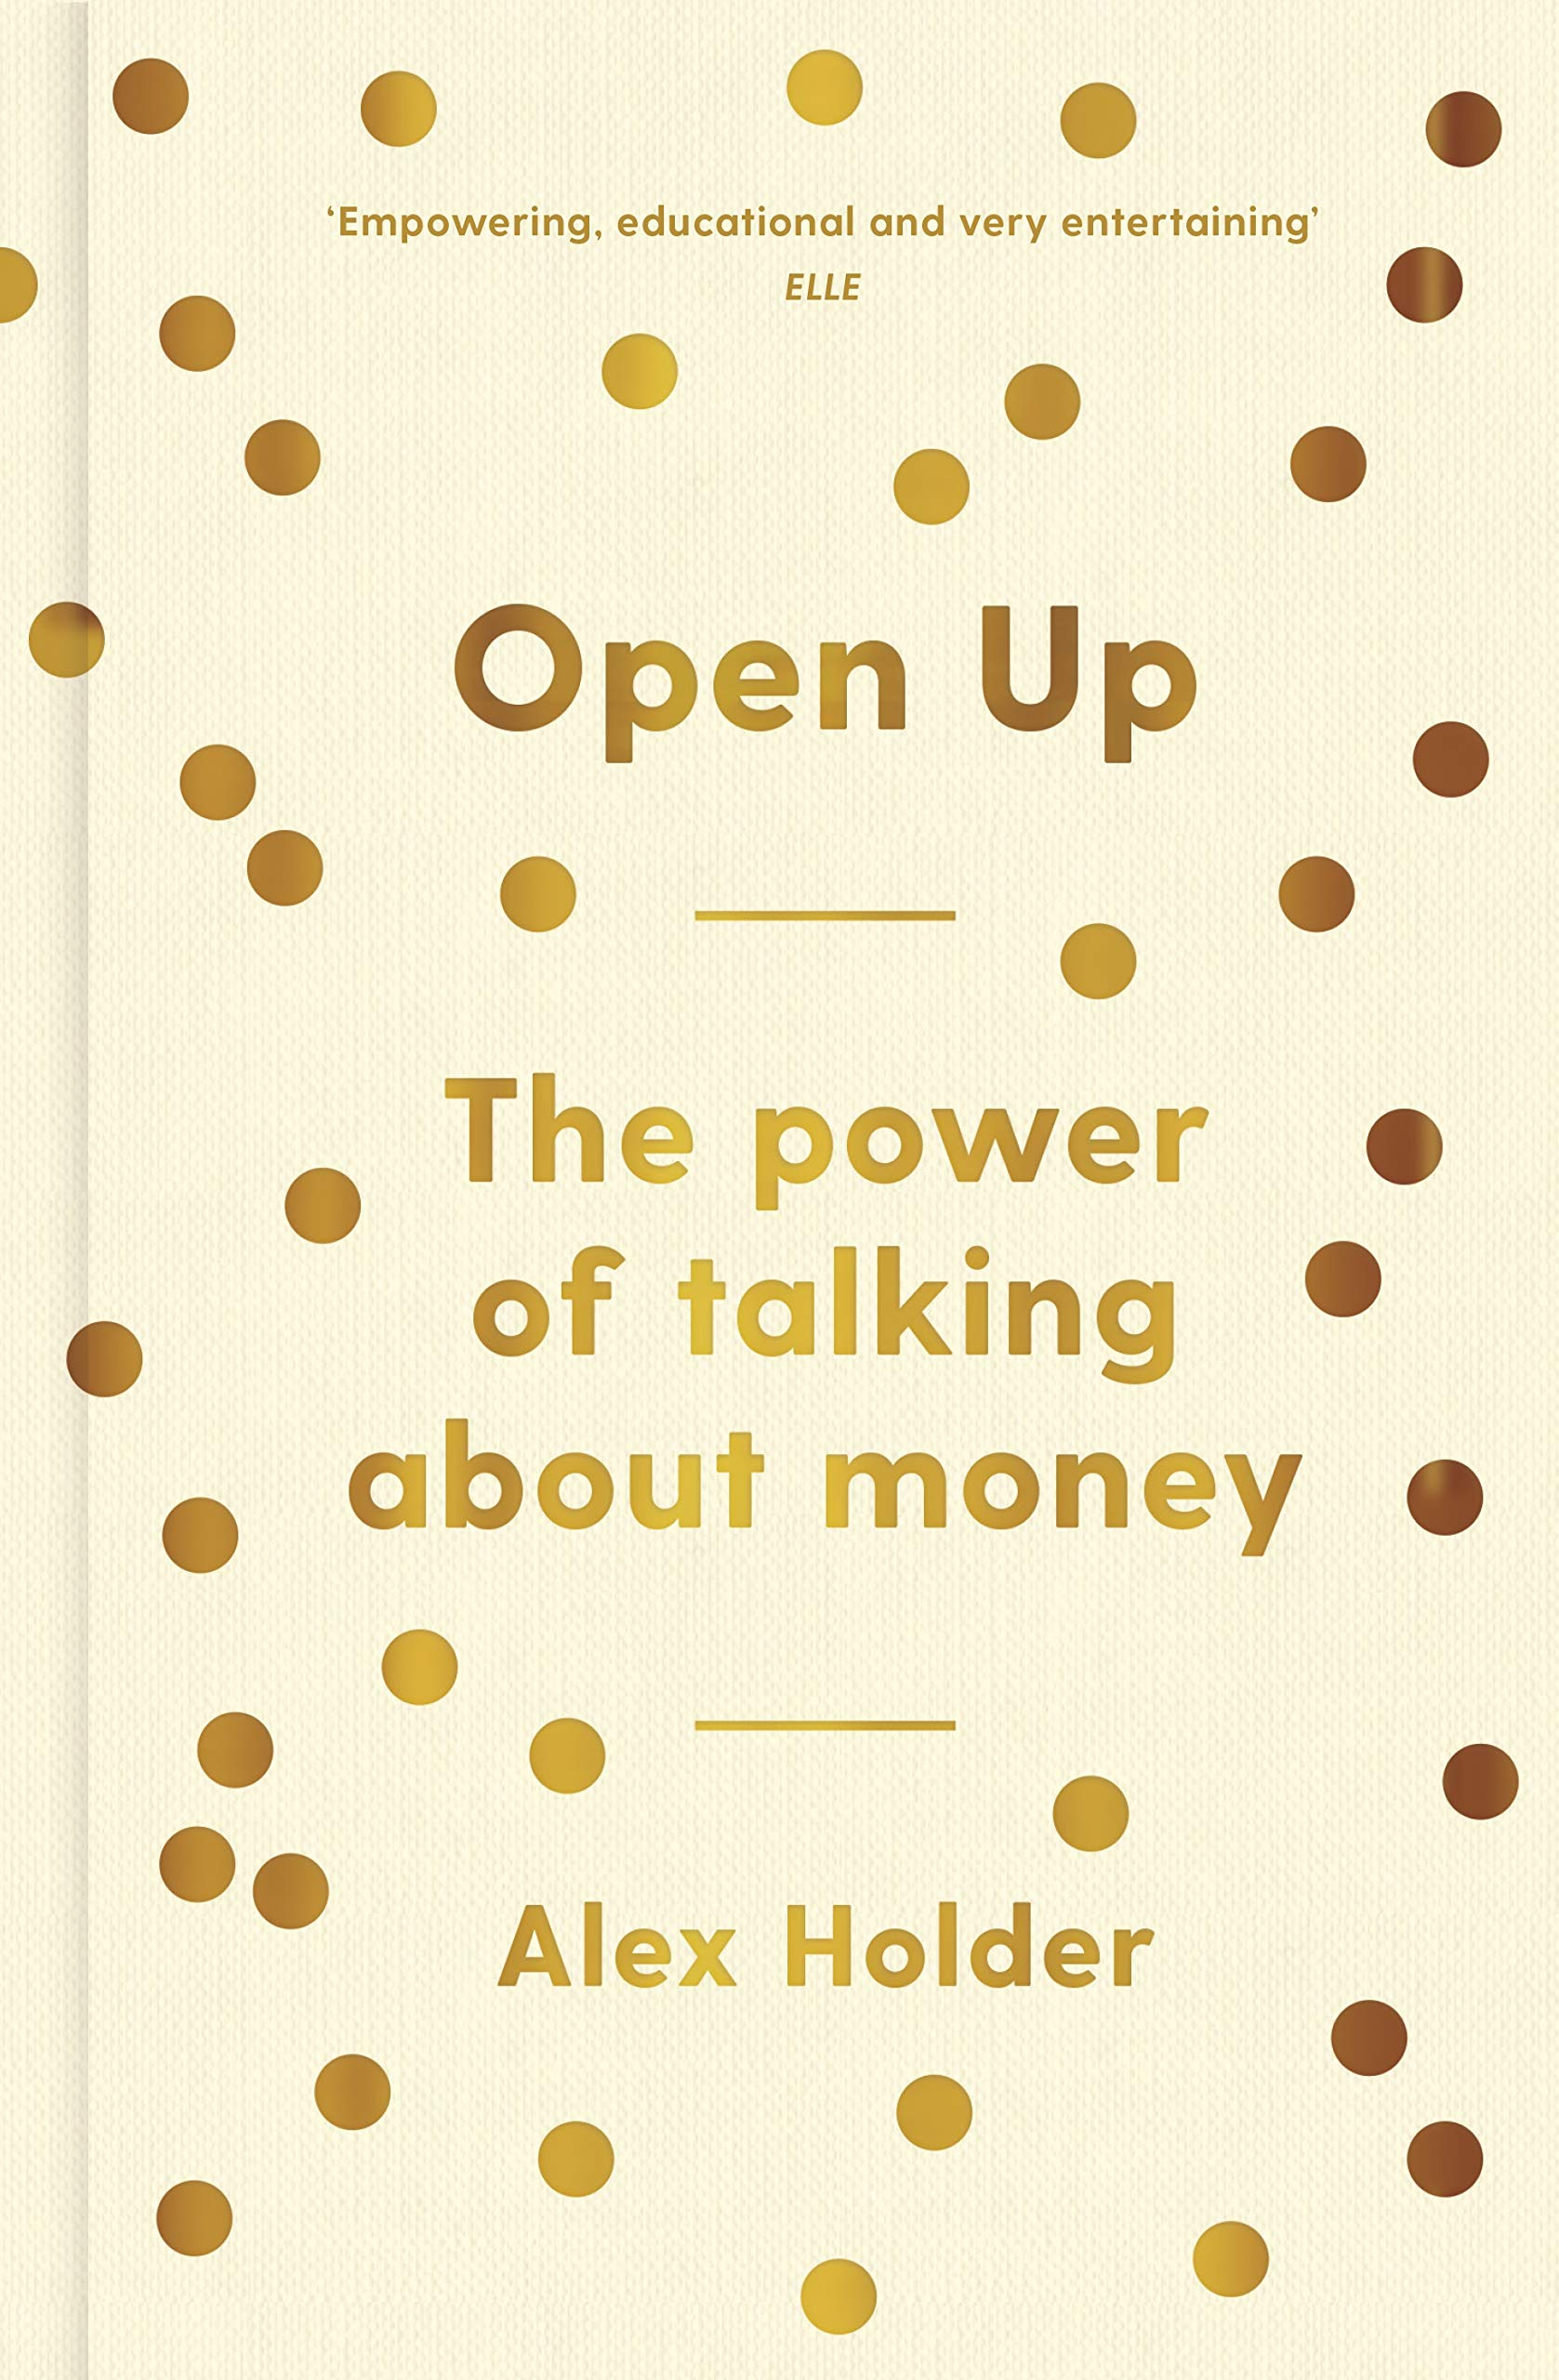 Image of the front cover of the book Open Up